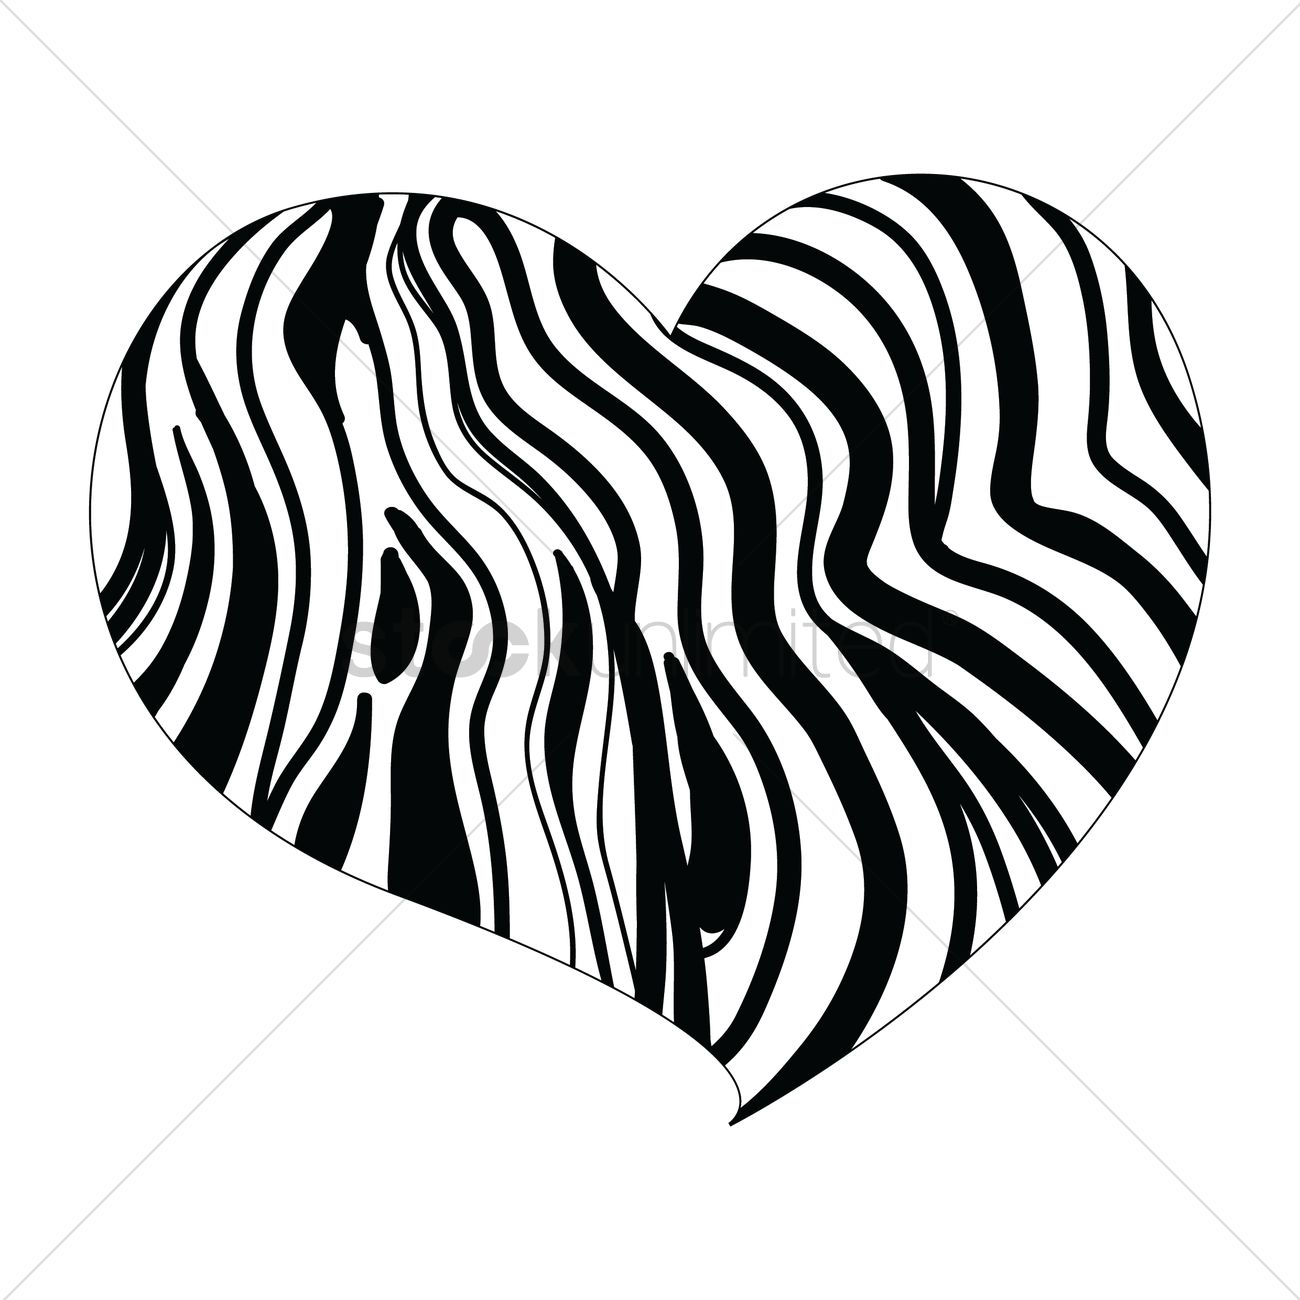 1300x1300 Heart Design With Zebra Print Vector Image